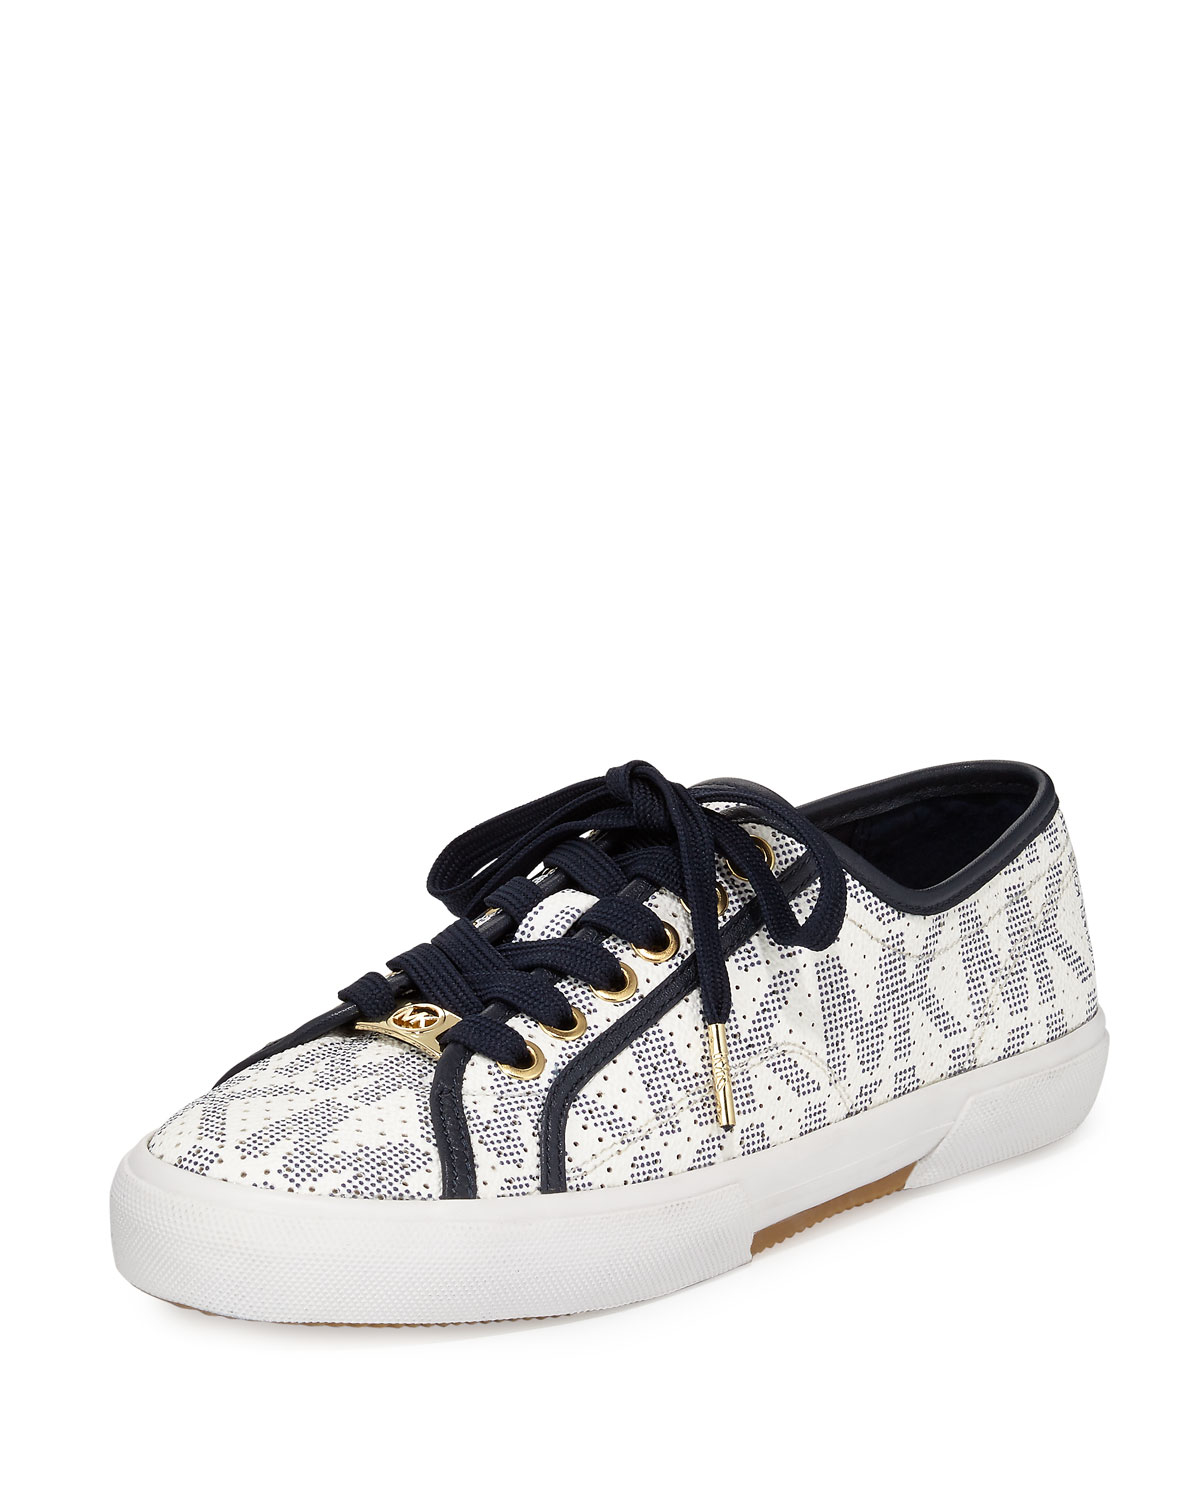 d138d2f9217c0 ... Low Top Sneaker White Navy. Lyst Michael Kors Allie Sport Suede Sneaker  In Blue